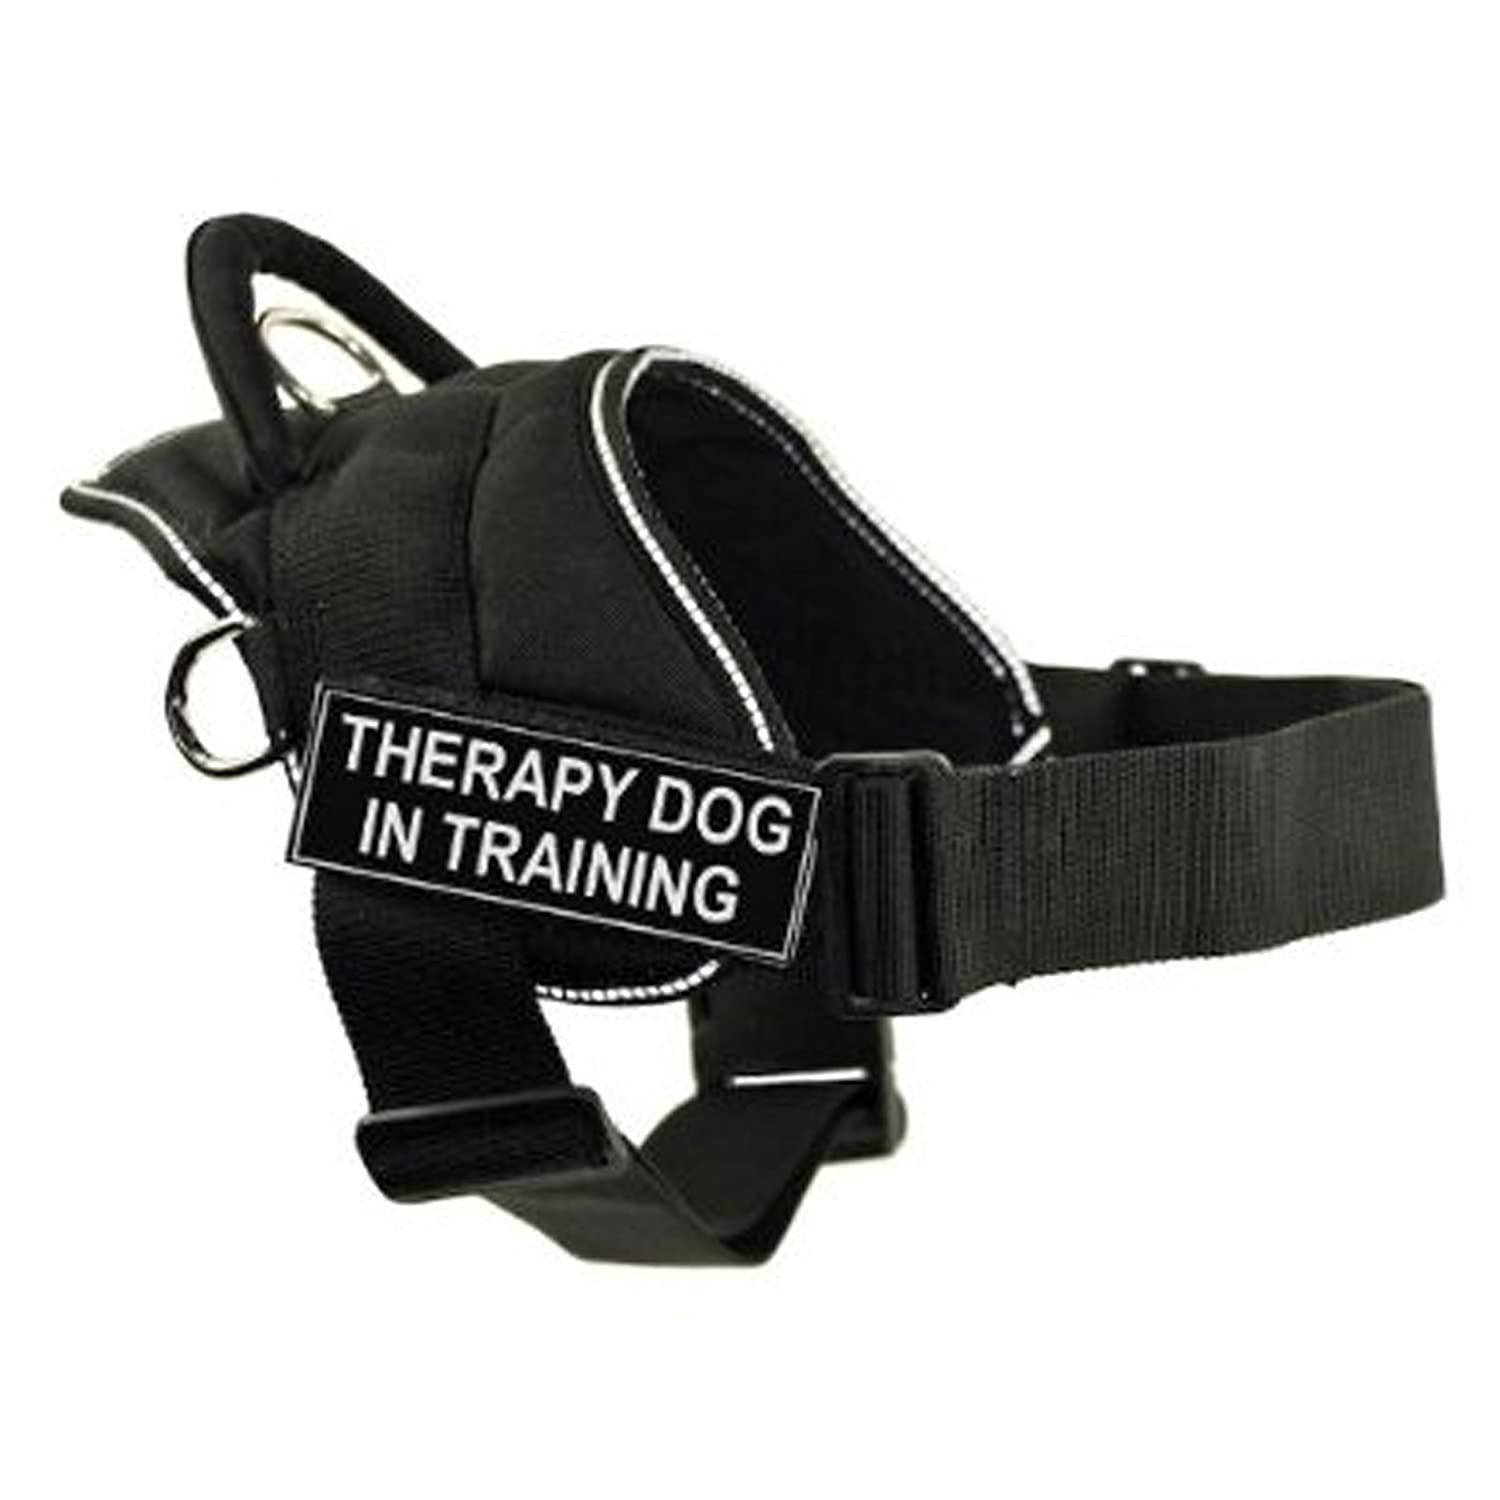 Dean & Tyler Fun Works Harness, Therapy Dog in Training, Black with Reflective Trim, Small, Fits Girth Size  22-Inch to 27-Inch